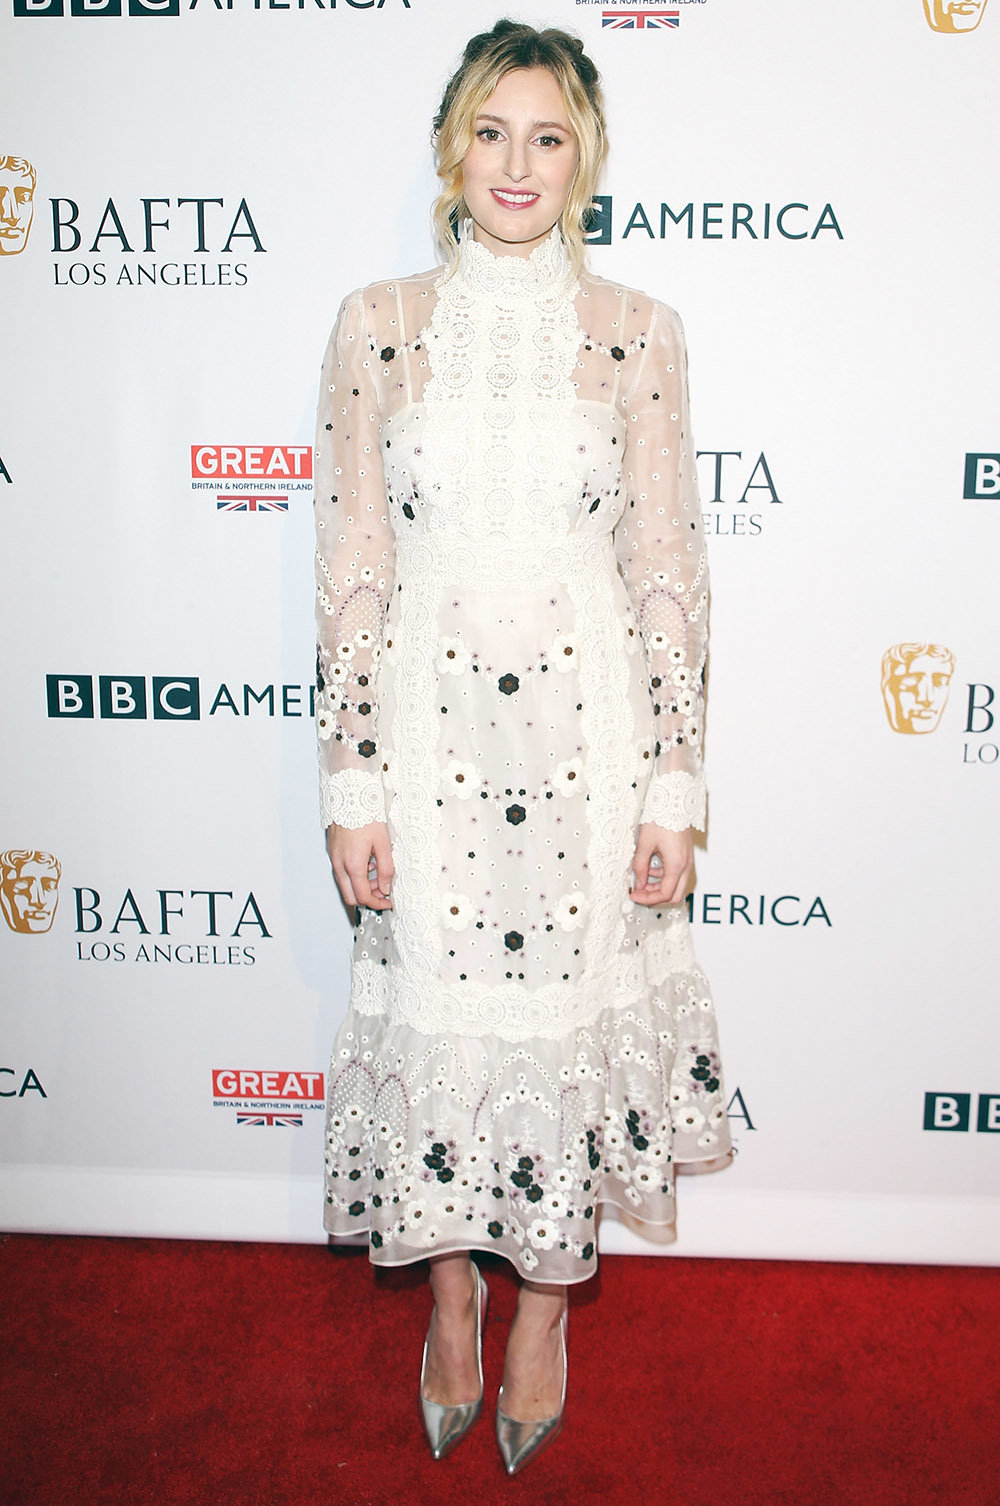 What better way to relax the day before the Emmys than with an afternoon tea. The BAFTA Los AngelesTV Tea party kicked off with its usual sophisticated swagger Saturday at the Boxwood cafe inside of the London Hotel in West Hollywood, Calif., with Brits and non-Brits like Maisie Williams, Laura Carmichael, Emilia Clarke, and more gathering for an event filled with traditional British tea, cocktails, and plenty of conversation to celebrate this year's nominees.